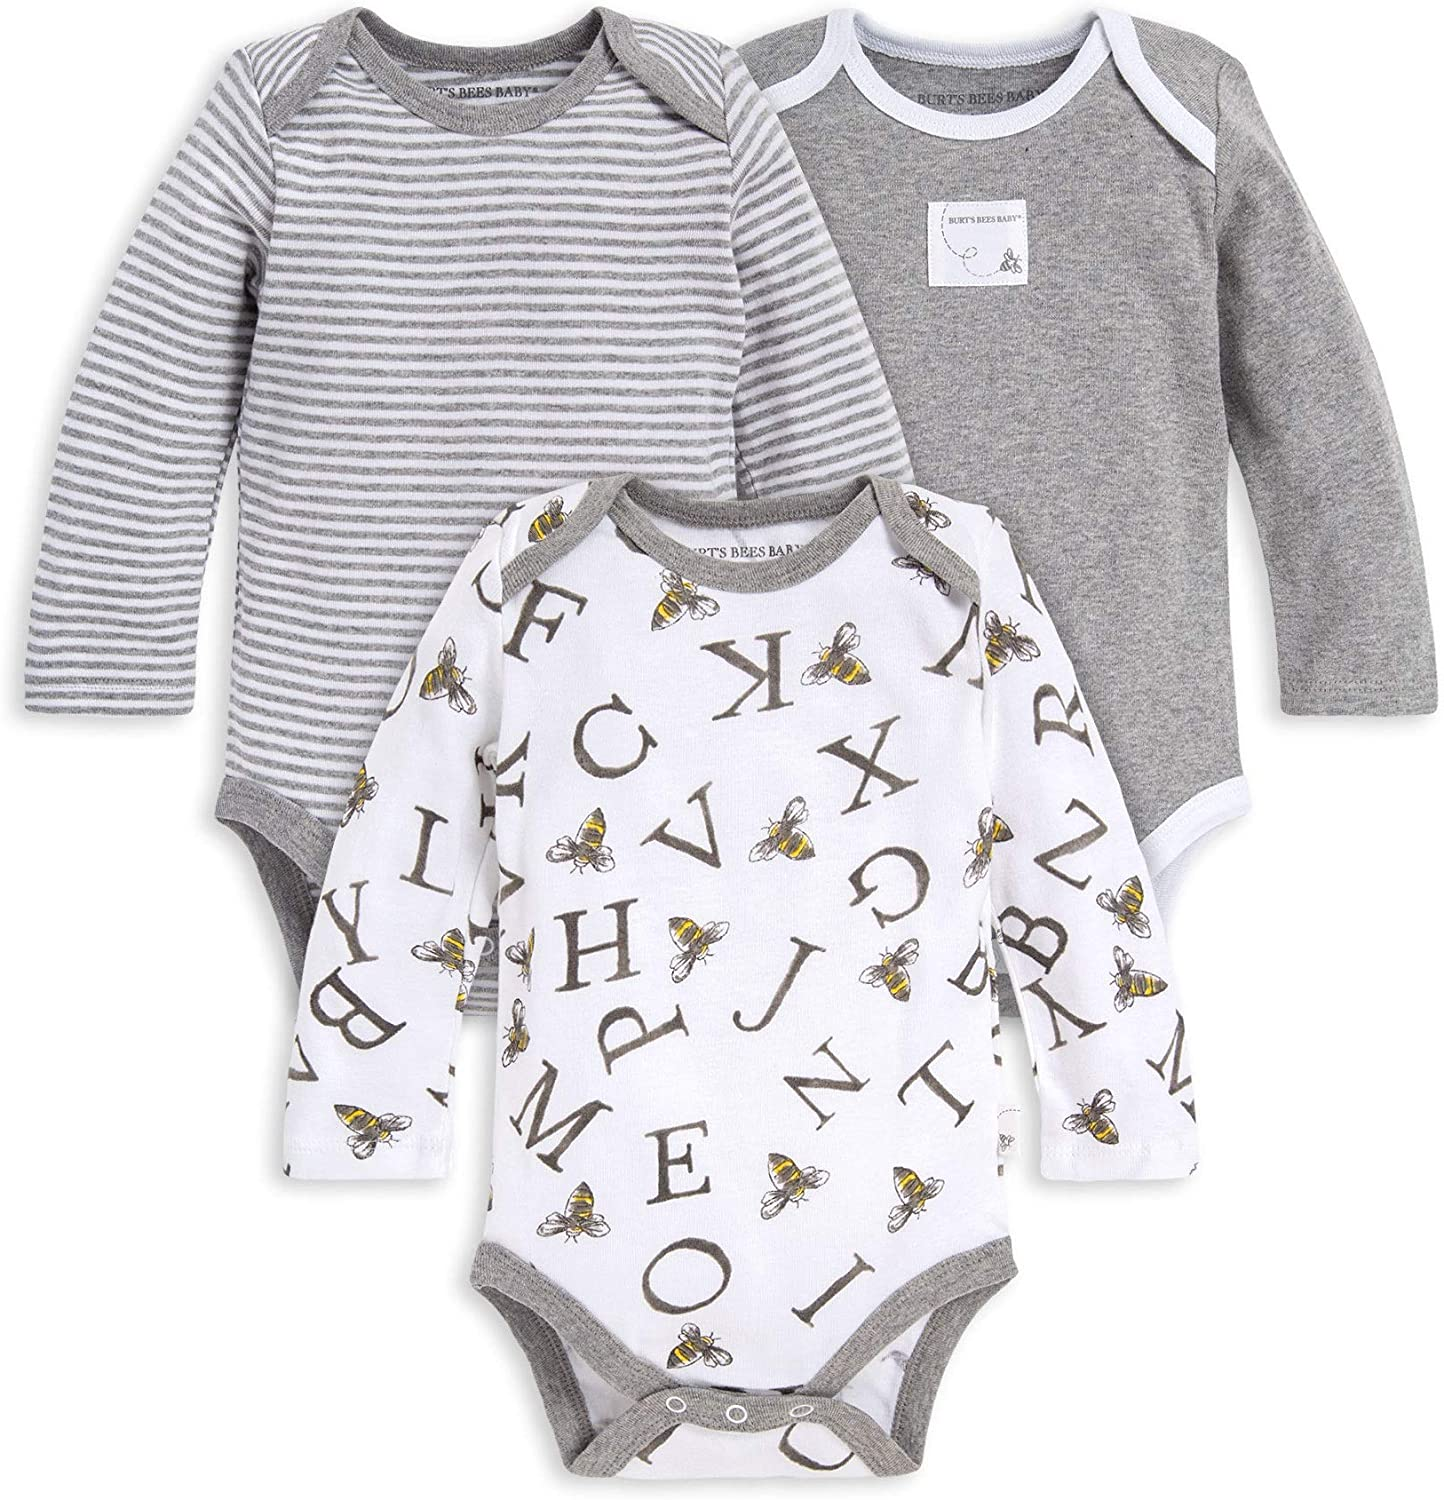 Burt's Bees Baby Baby Boys' Bodysuits, 3-Pack Long & Short-Sleeve One-Pieces, 100% Organic Cotton